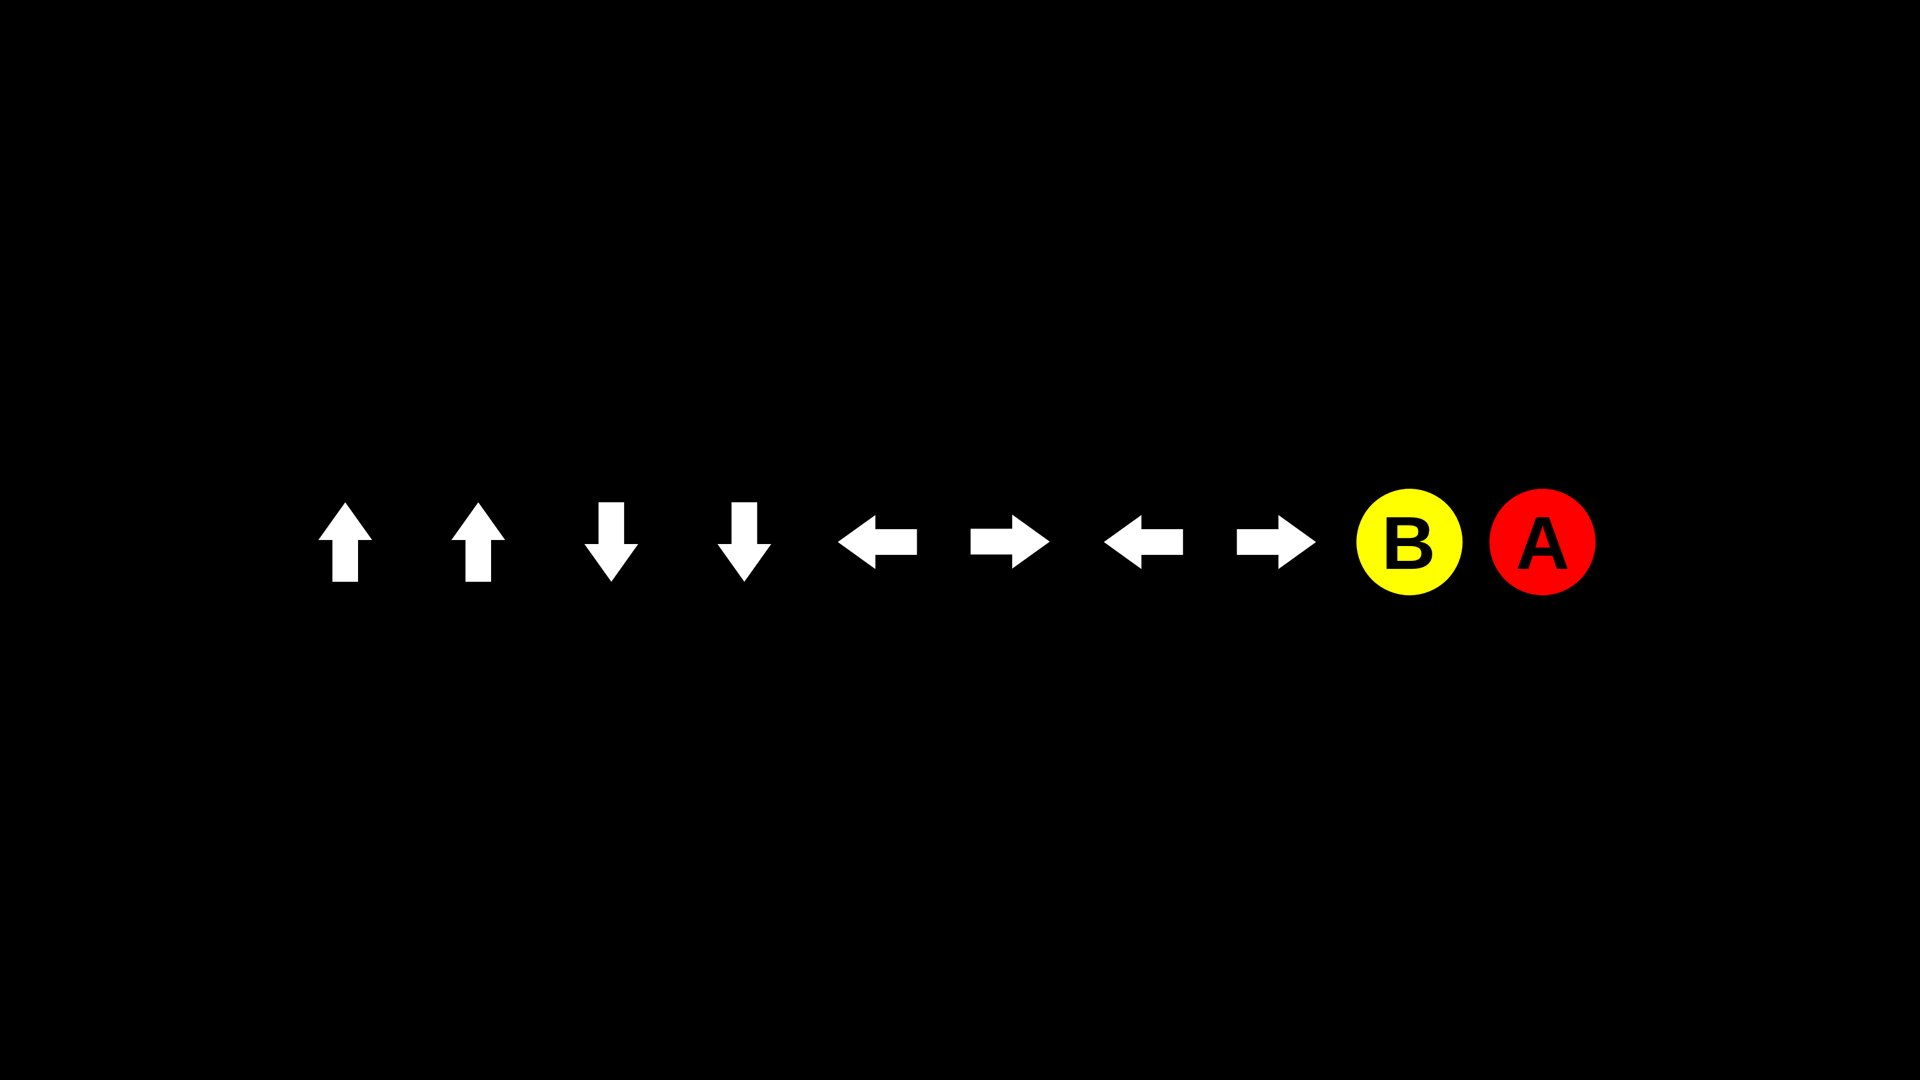 Konami Code Hd Wallpaper